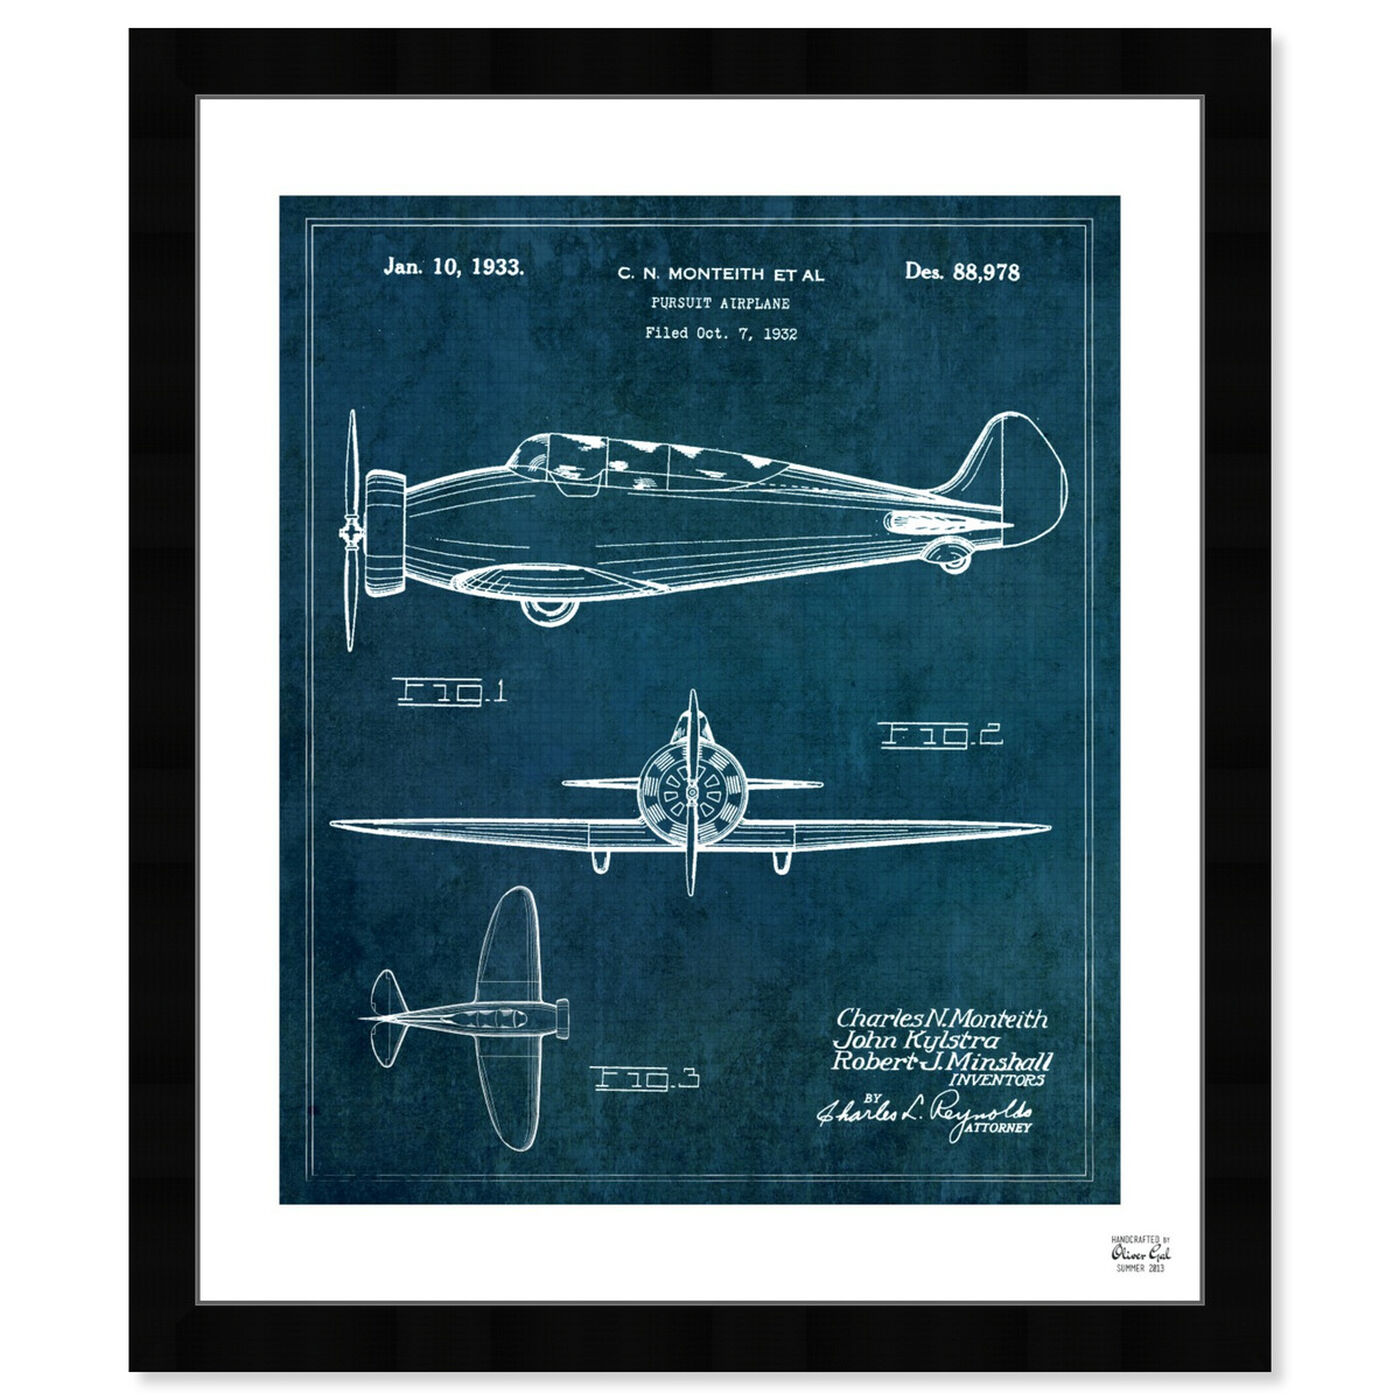 Front view of Pursuit Airplane 1933 featuring transportation and airplanes art.